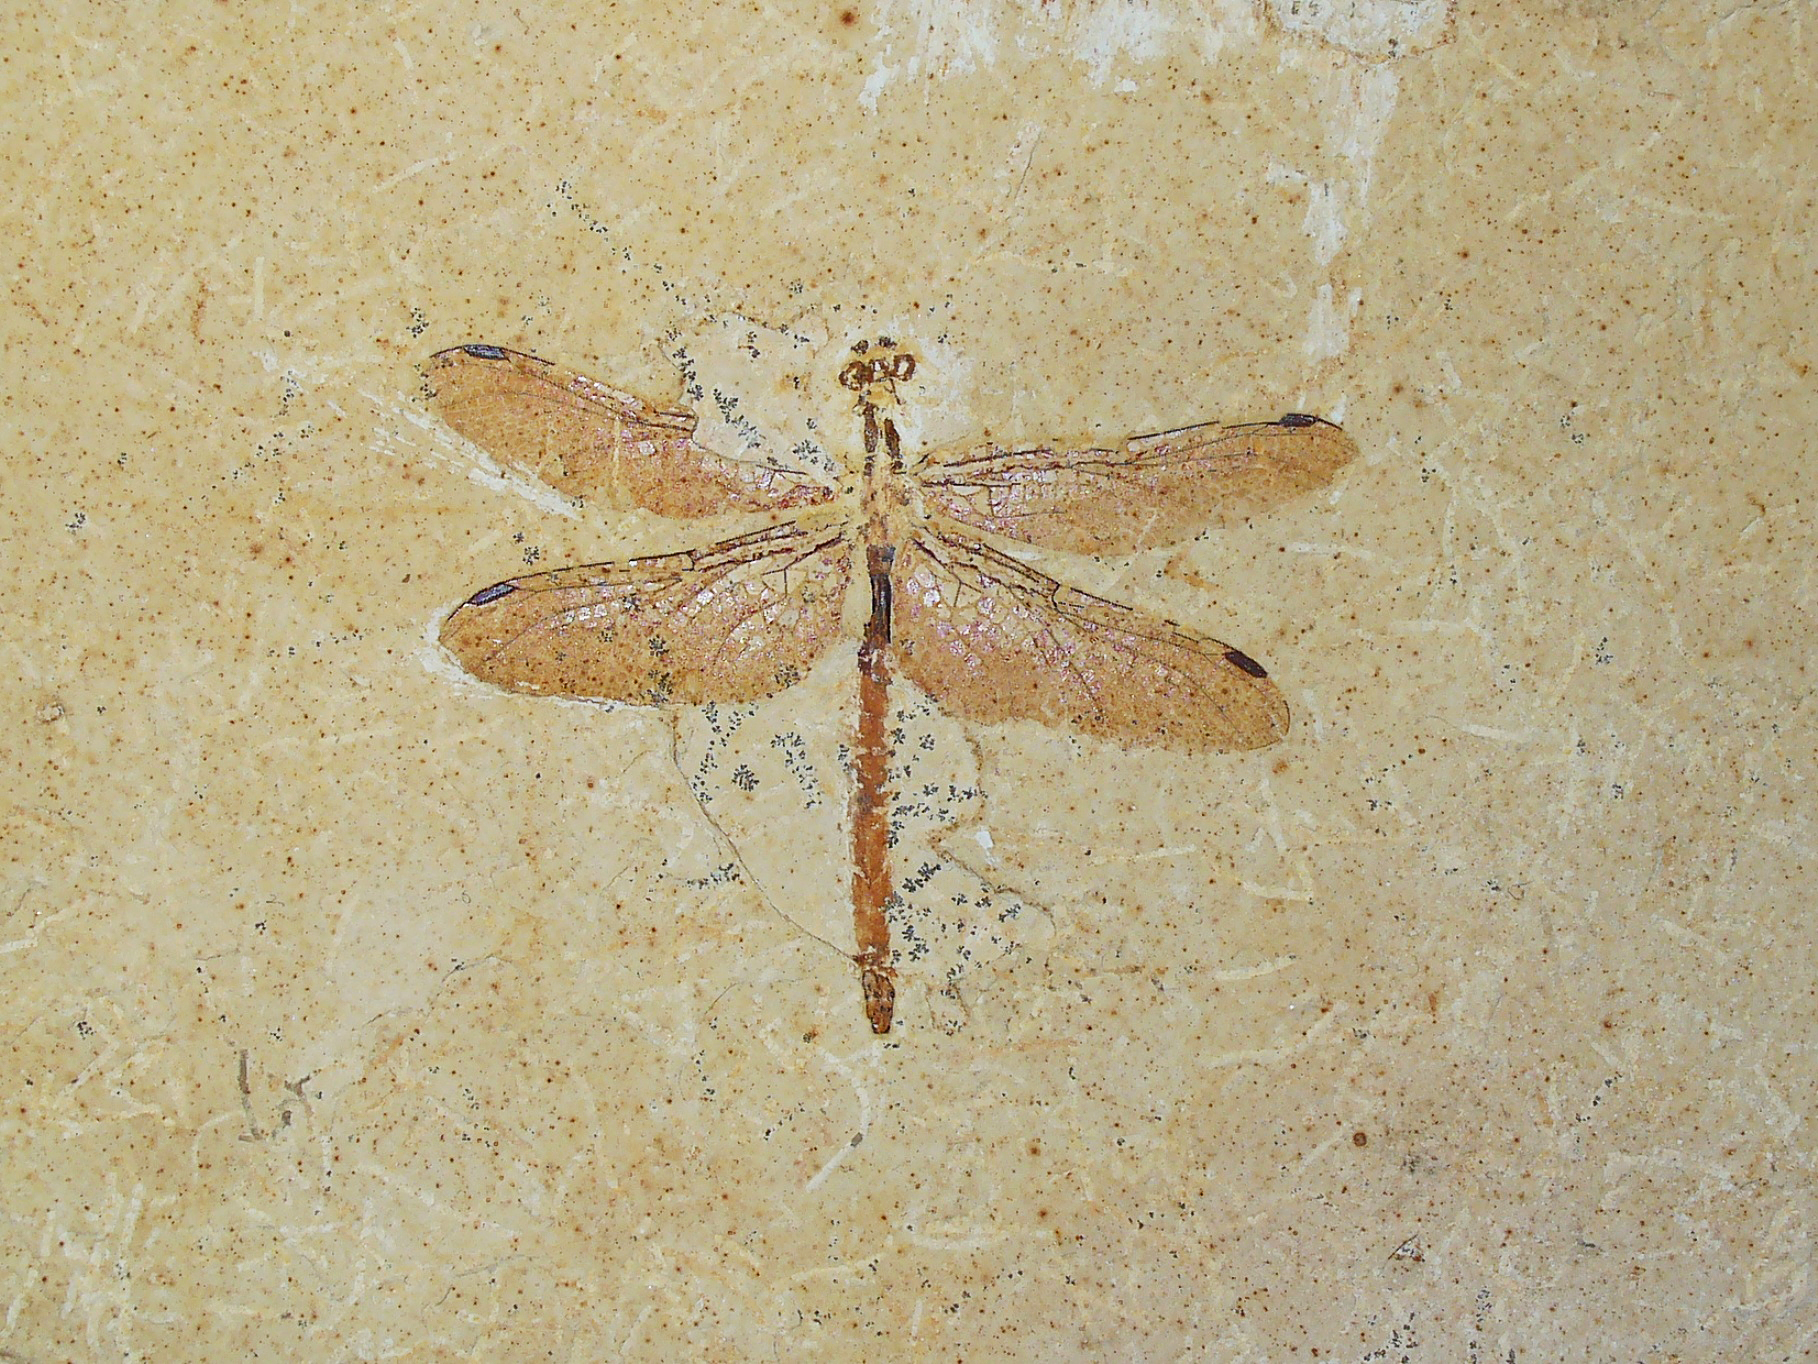 List of prehistoric insects - Wikipedia